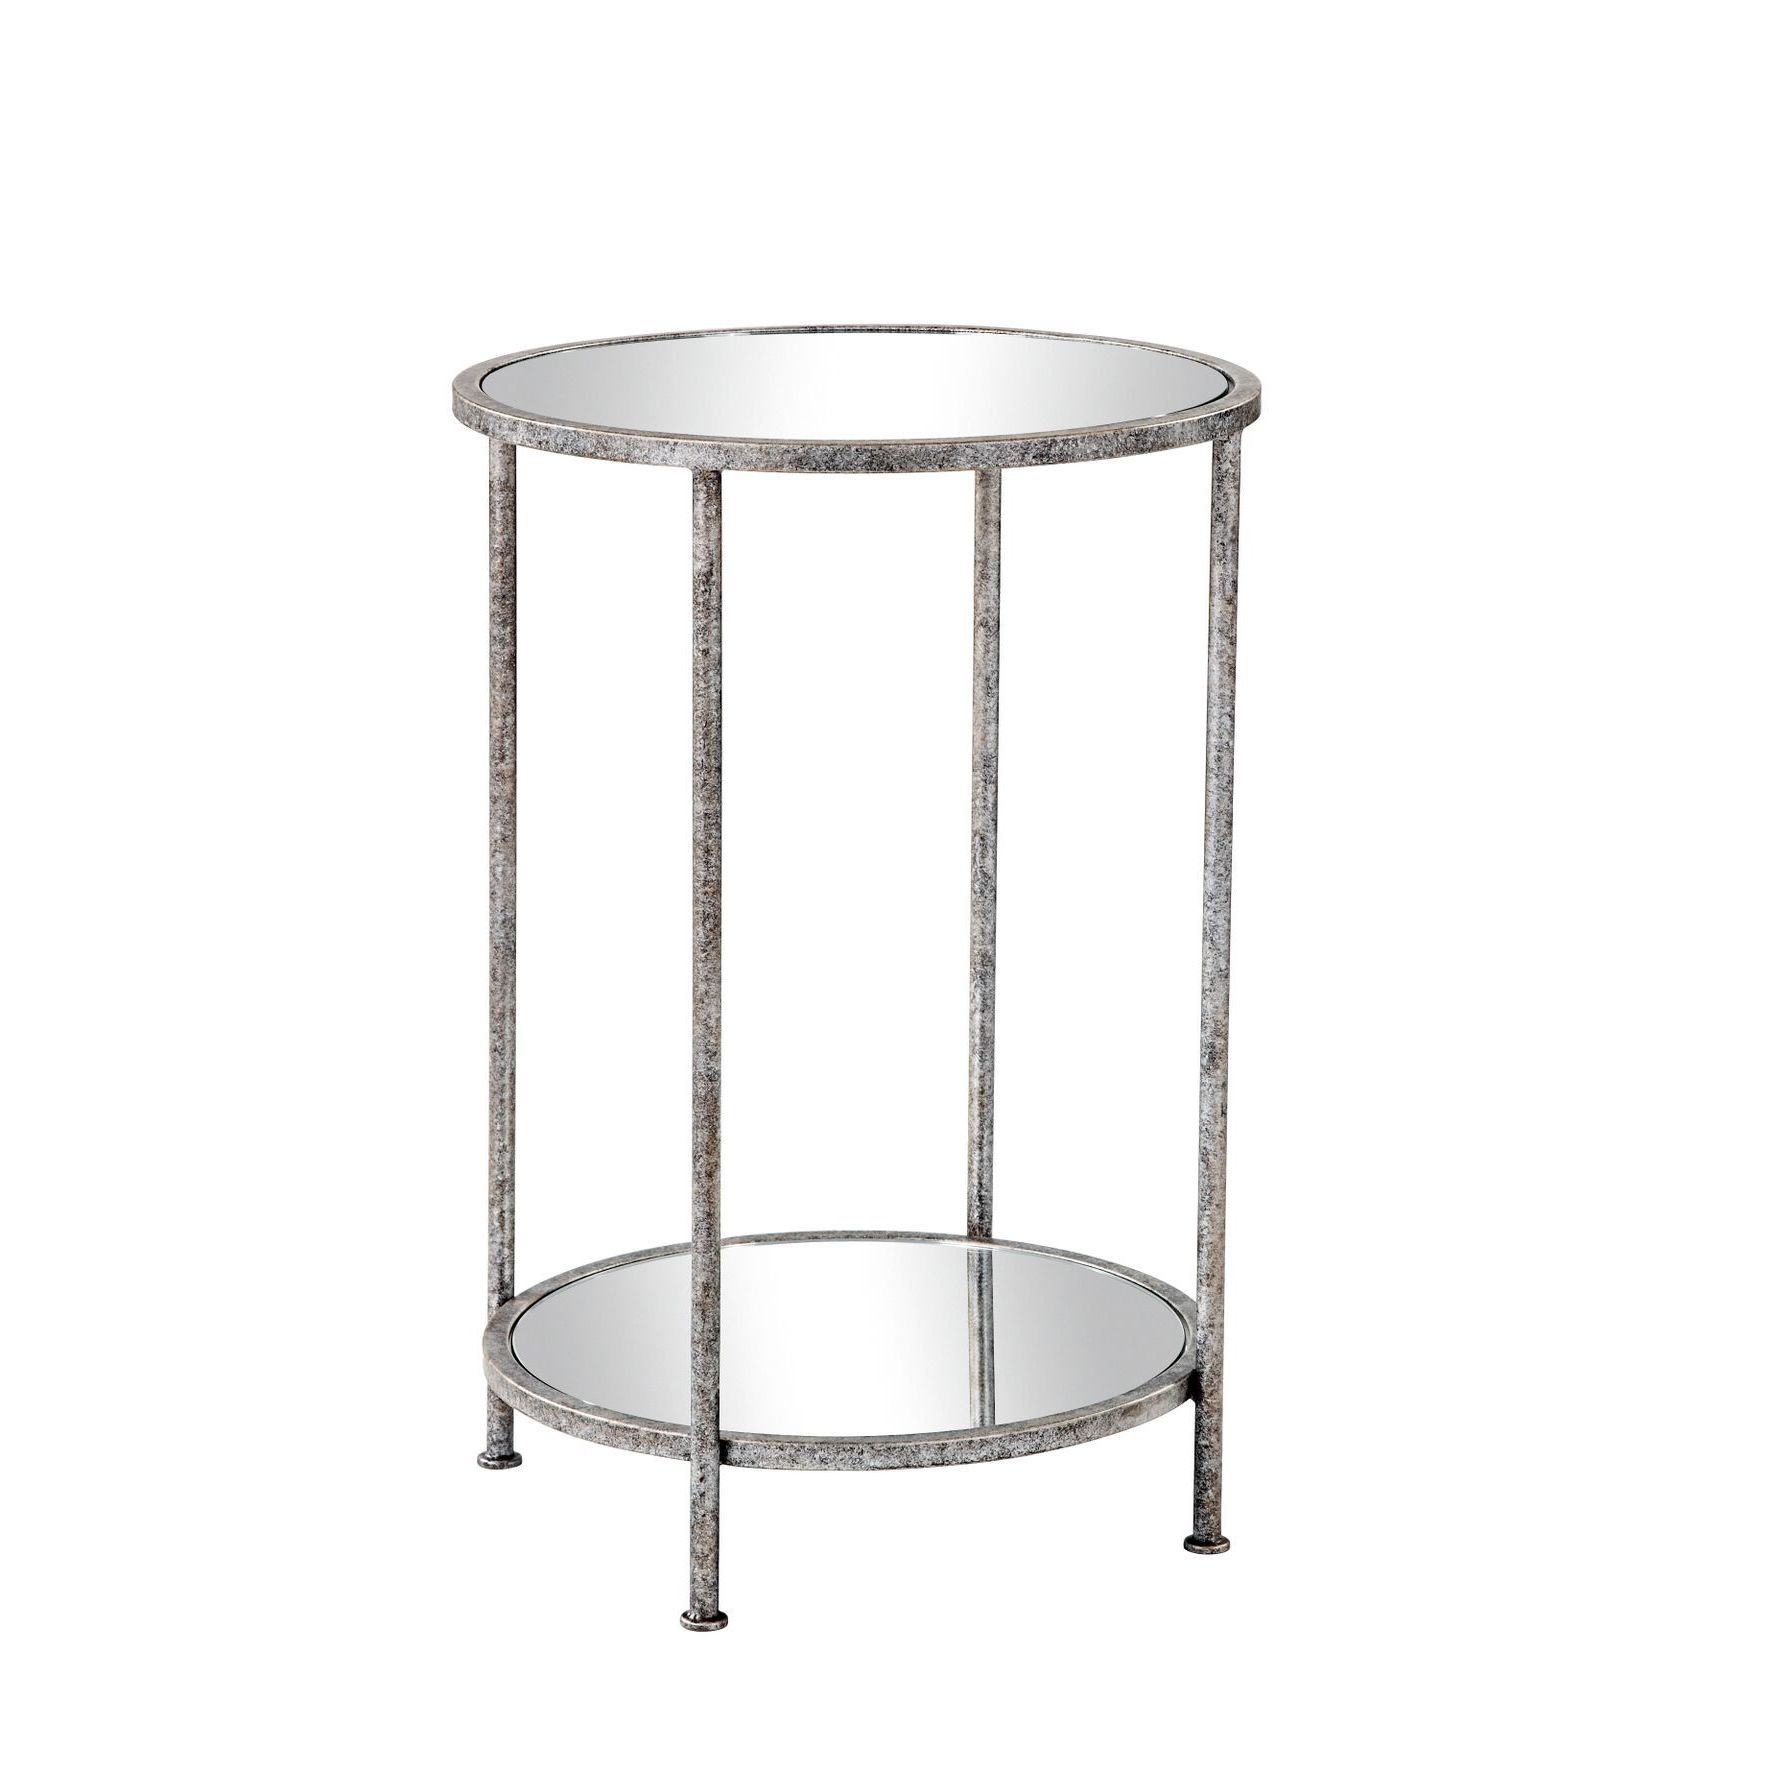 Pleasant Burnham Home Designs Wyatt Collection Silvertone Iron And Clear Glass Side Table Creativecarmelina Interior Chair Design Creativecarmelinacom